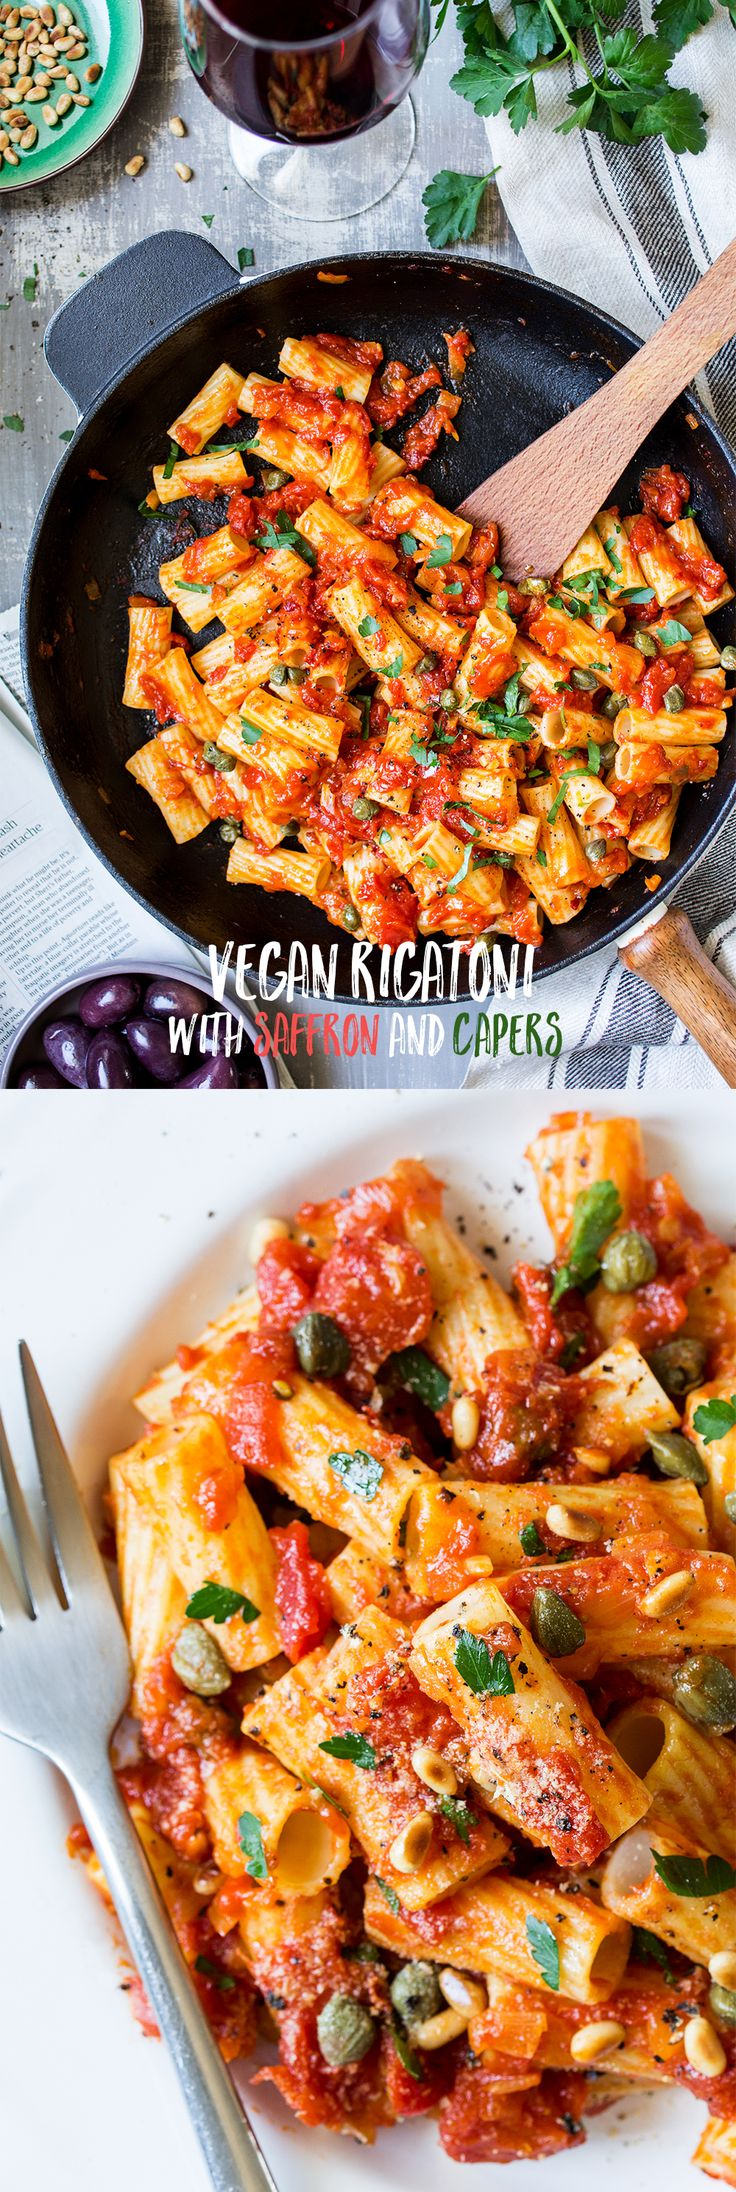 Vegan rigatoni with saffron, capers and tomatoes